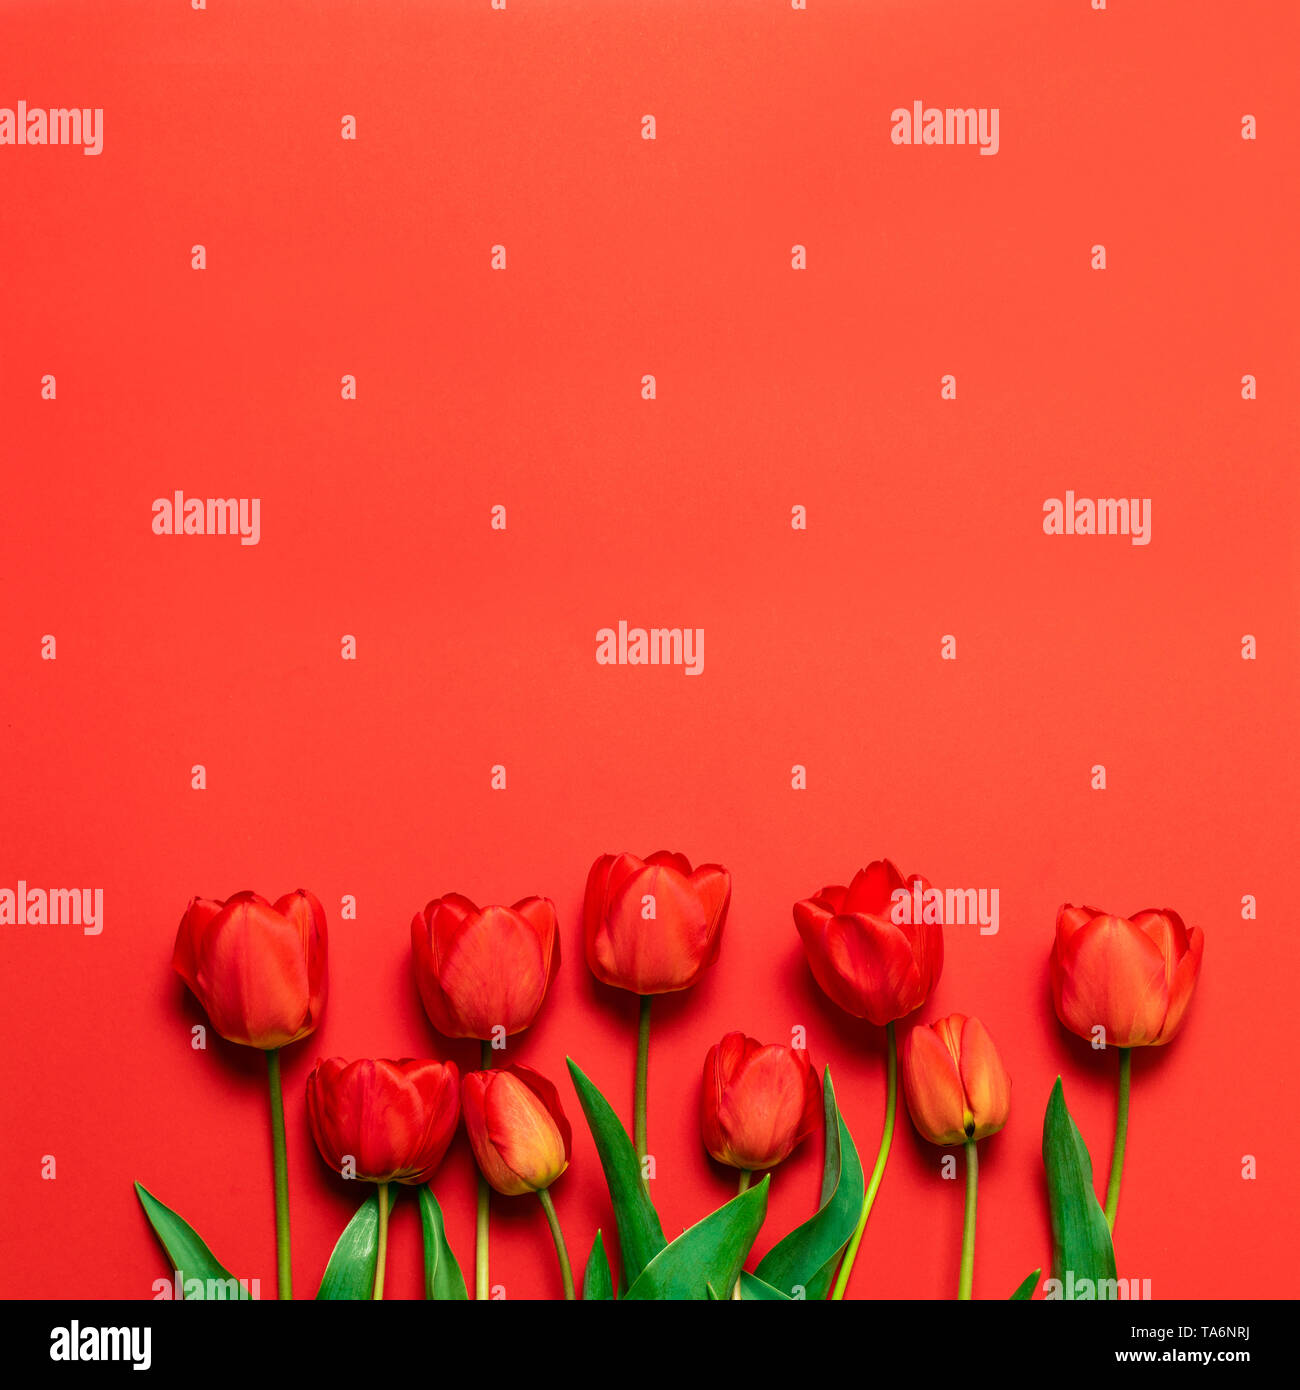 Spring background. Floral background Fresh bouquet of red tulips on a red substrate with a place for your text. - Stock Image